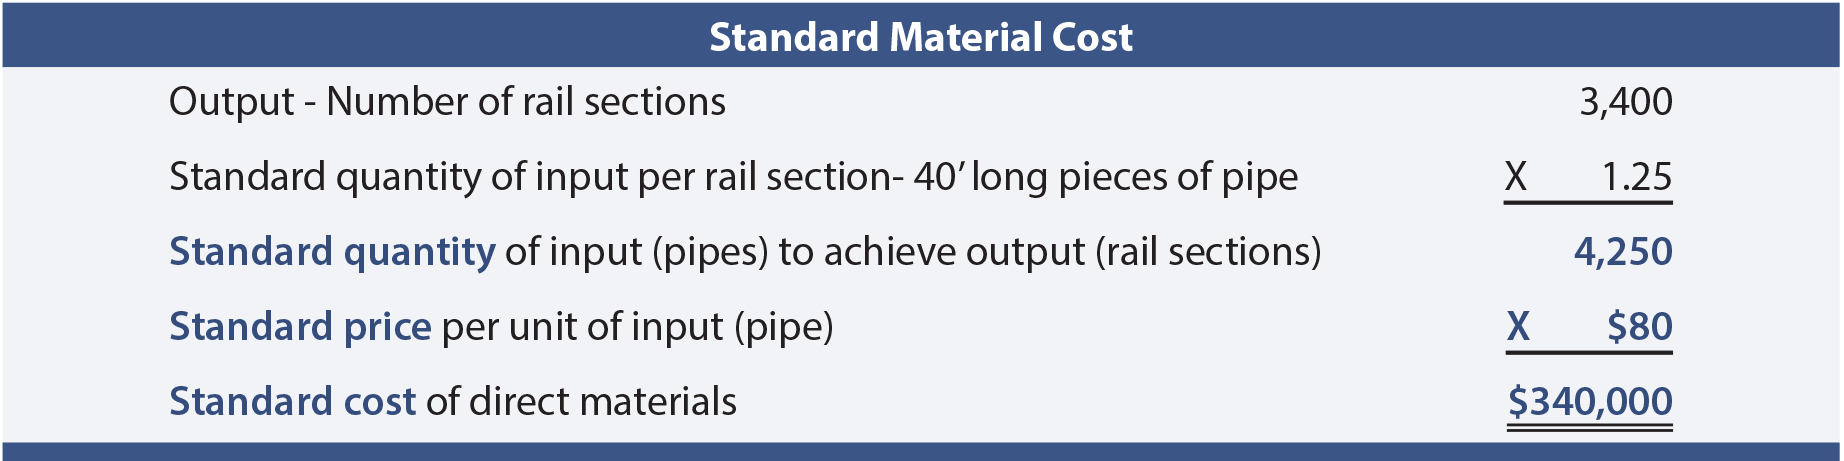 Standard Material Cost